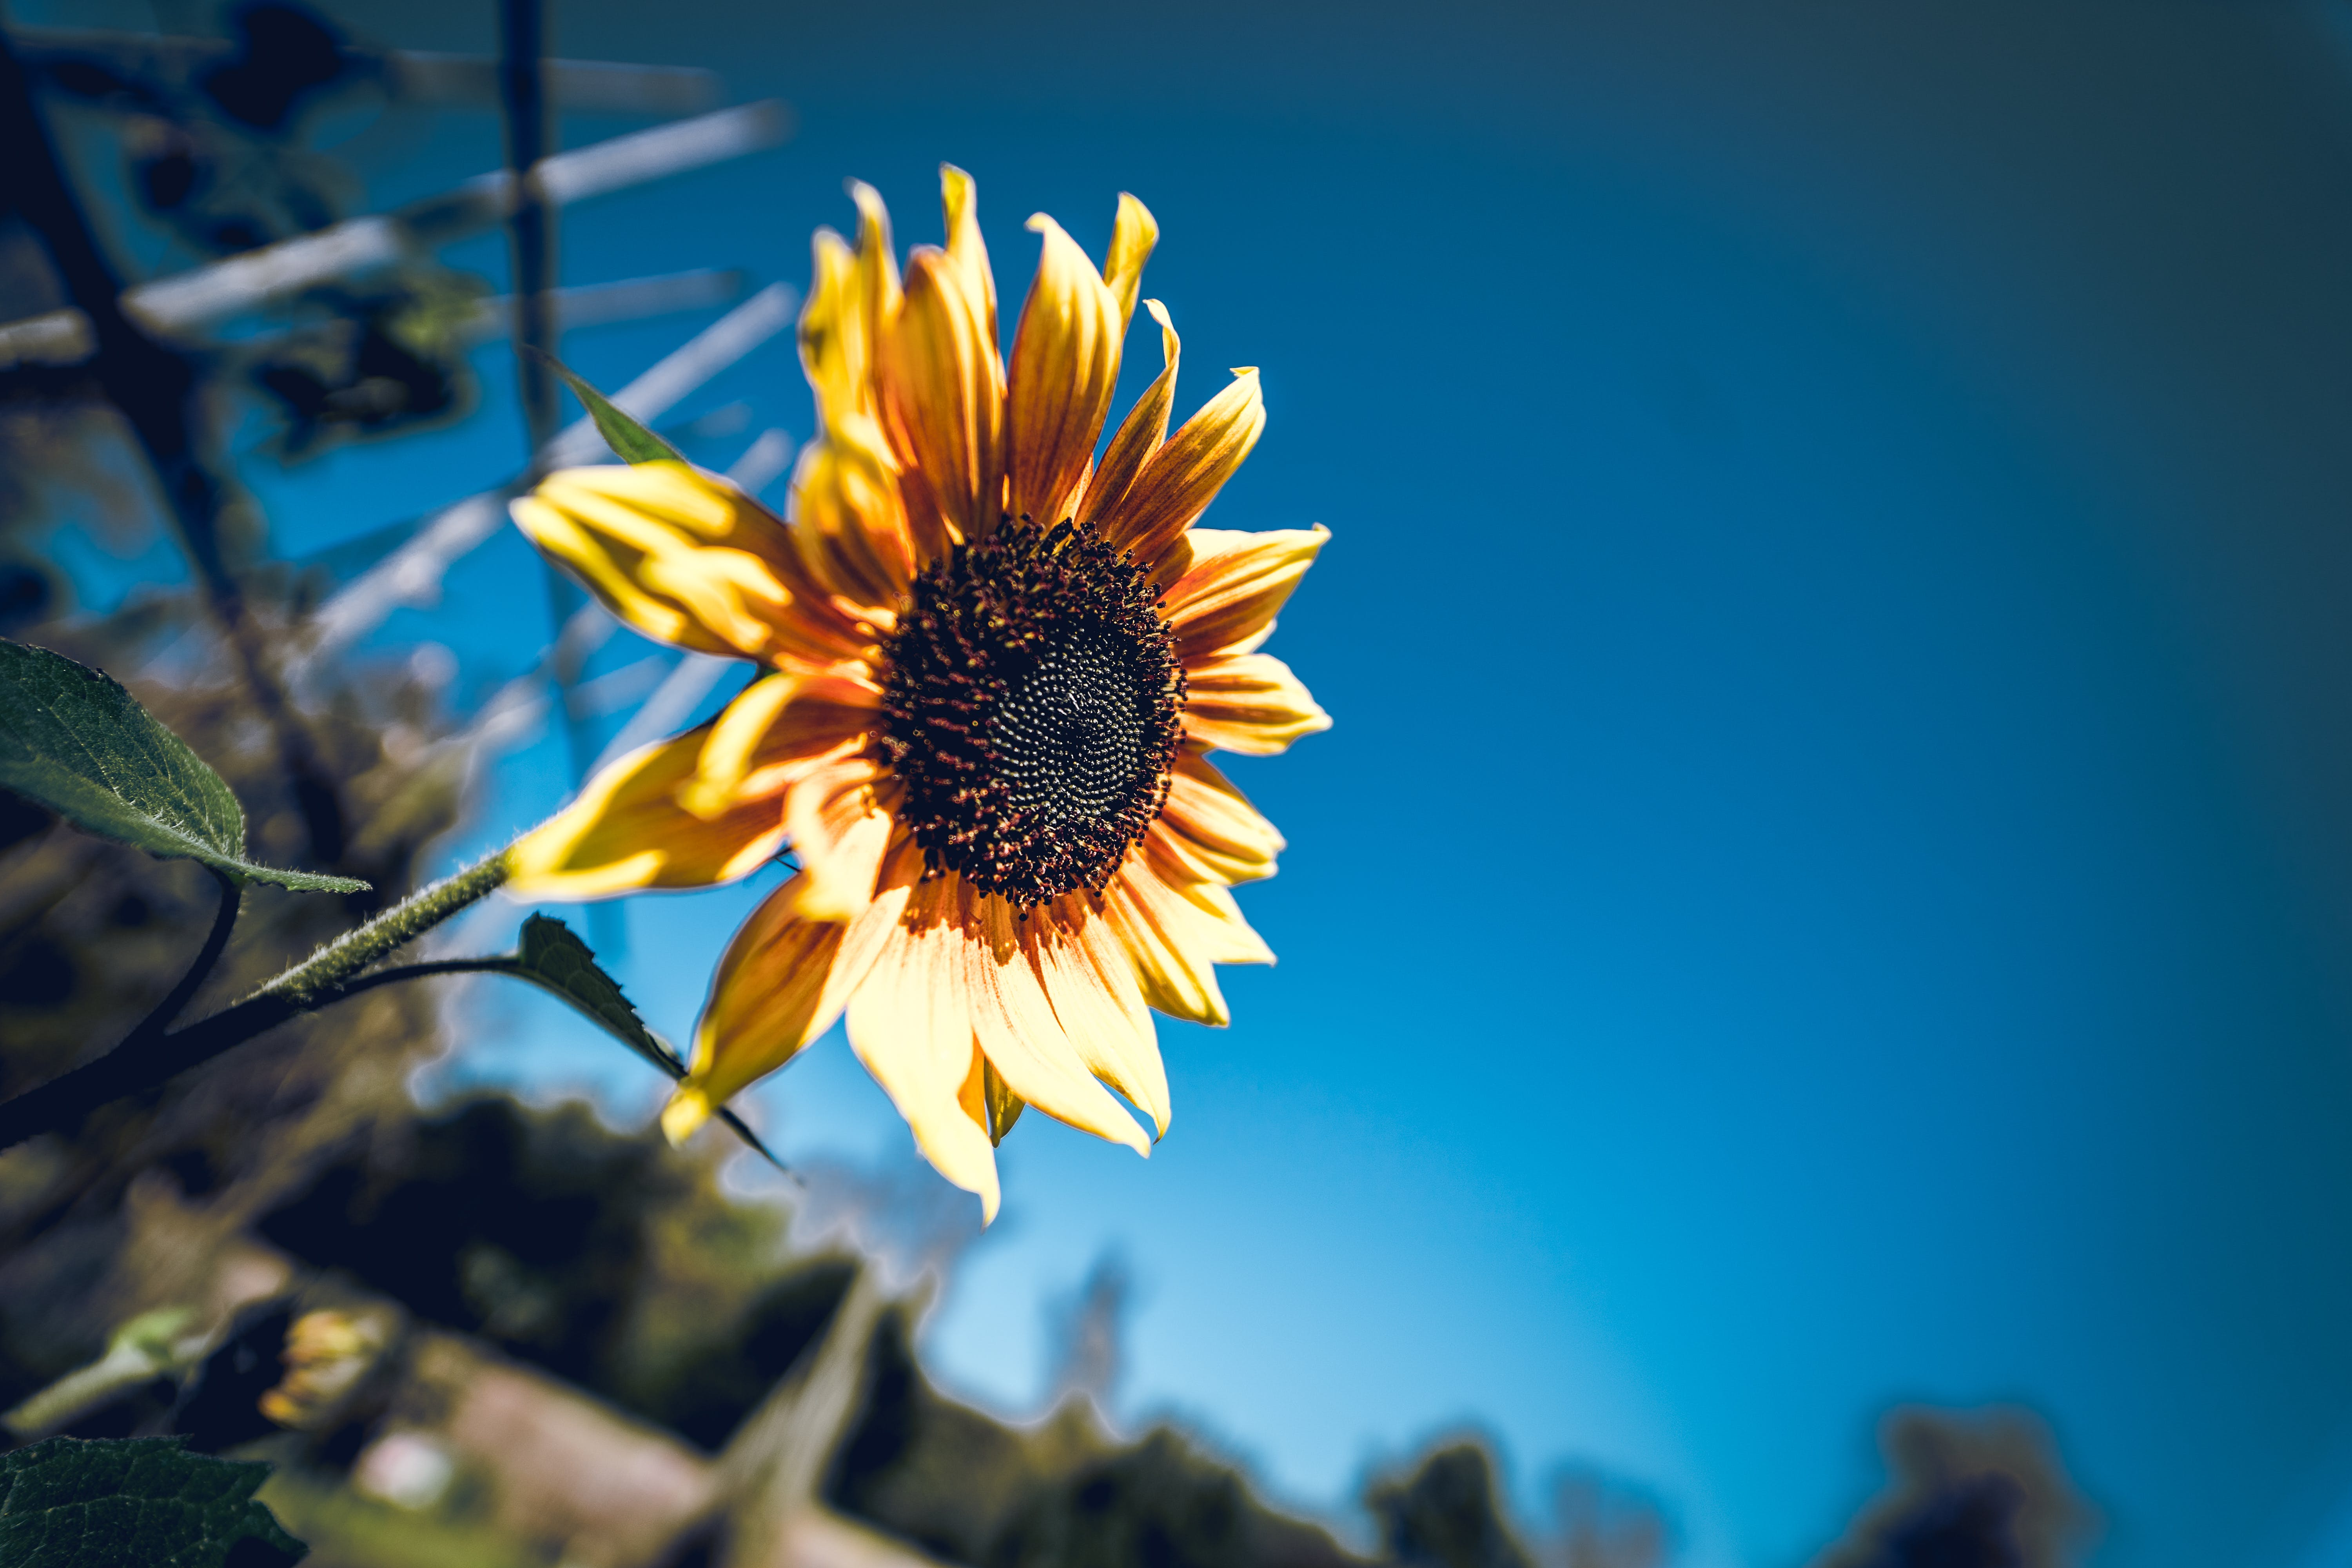 Tilt Shift Photography of Sunflower